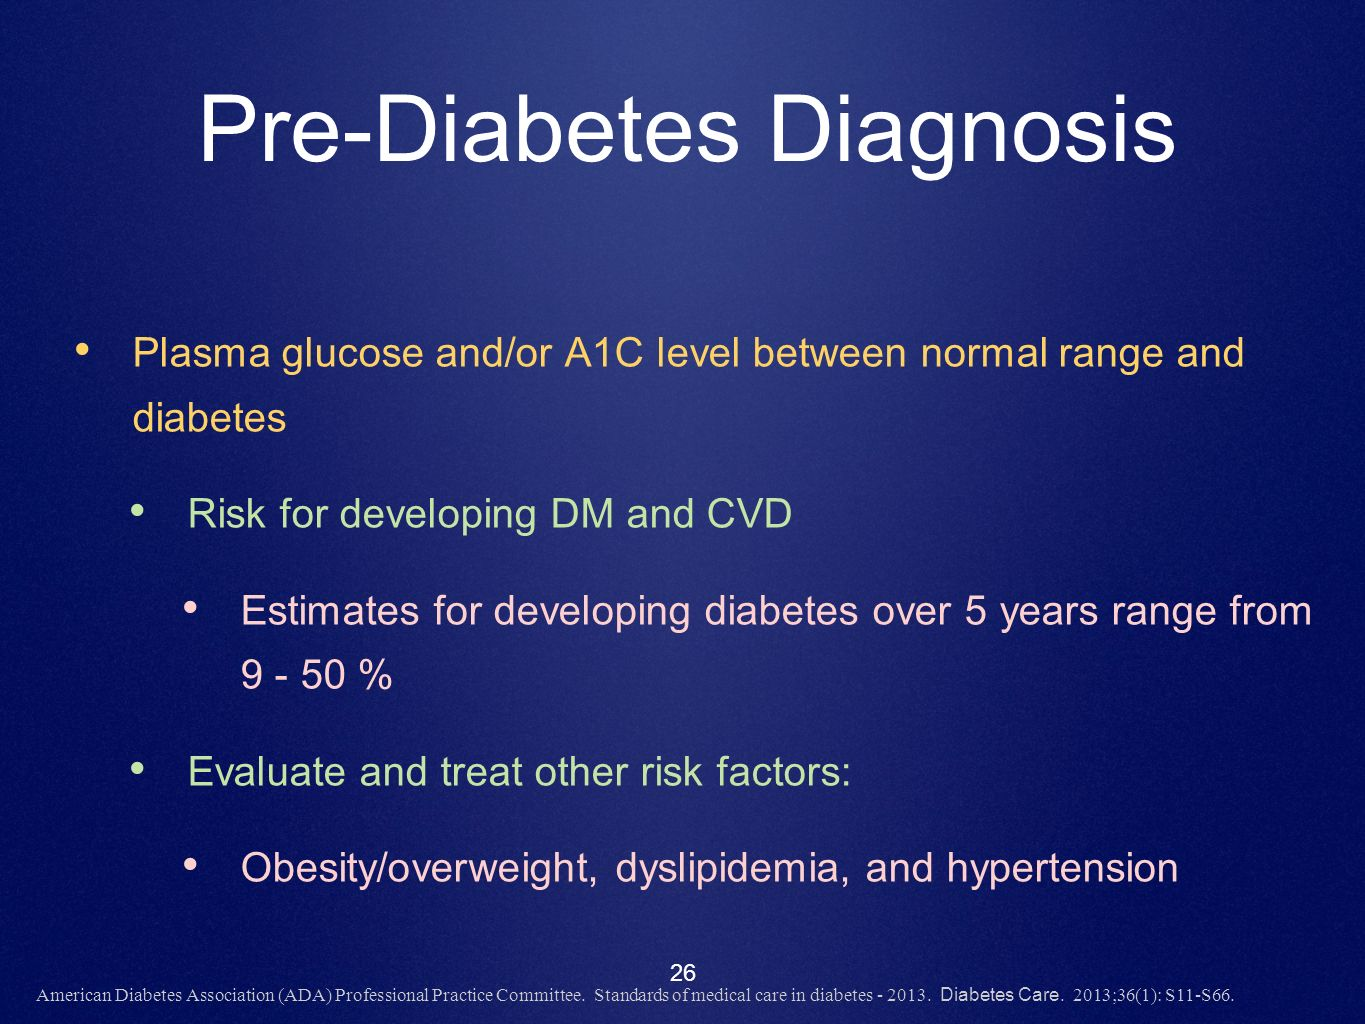 Pre-Diabetes Diagnosis